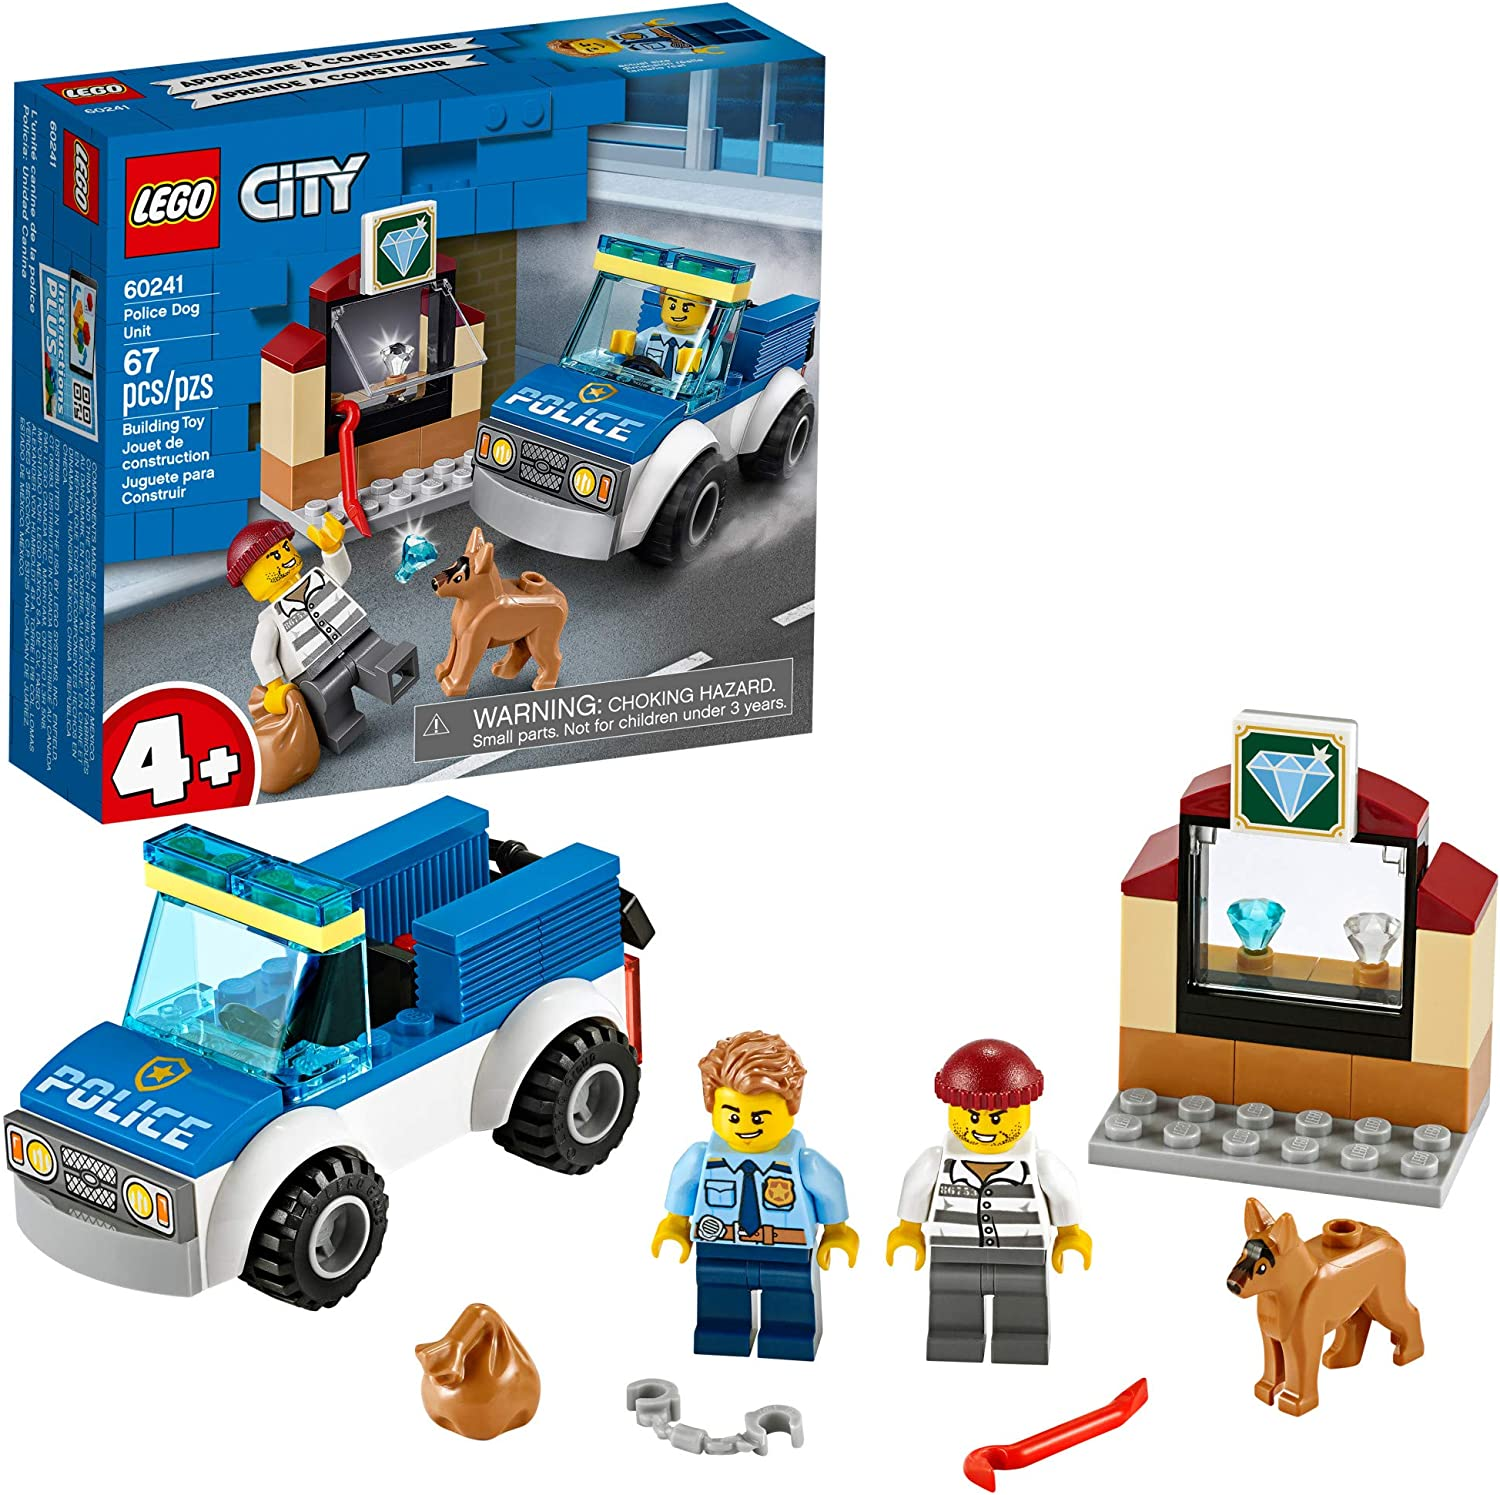 Amazon Com Lego City Police Dog Unit 60241 Police Toy Cool Building Set For Kids New 2020 67 Pieces Toys Games